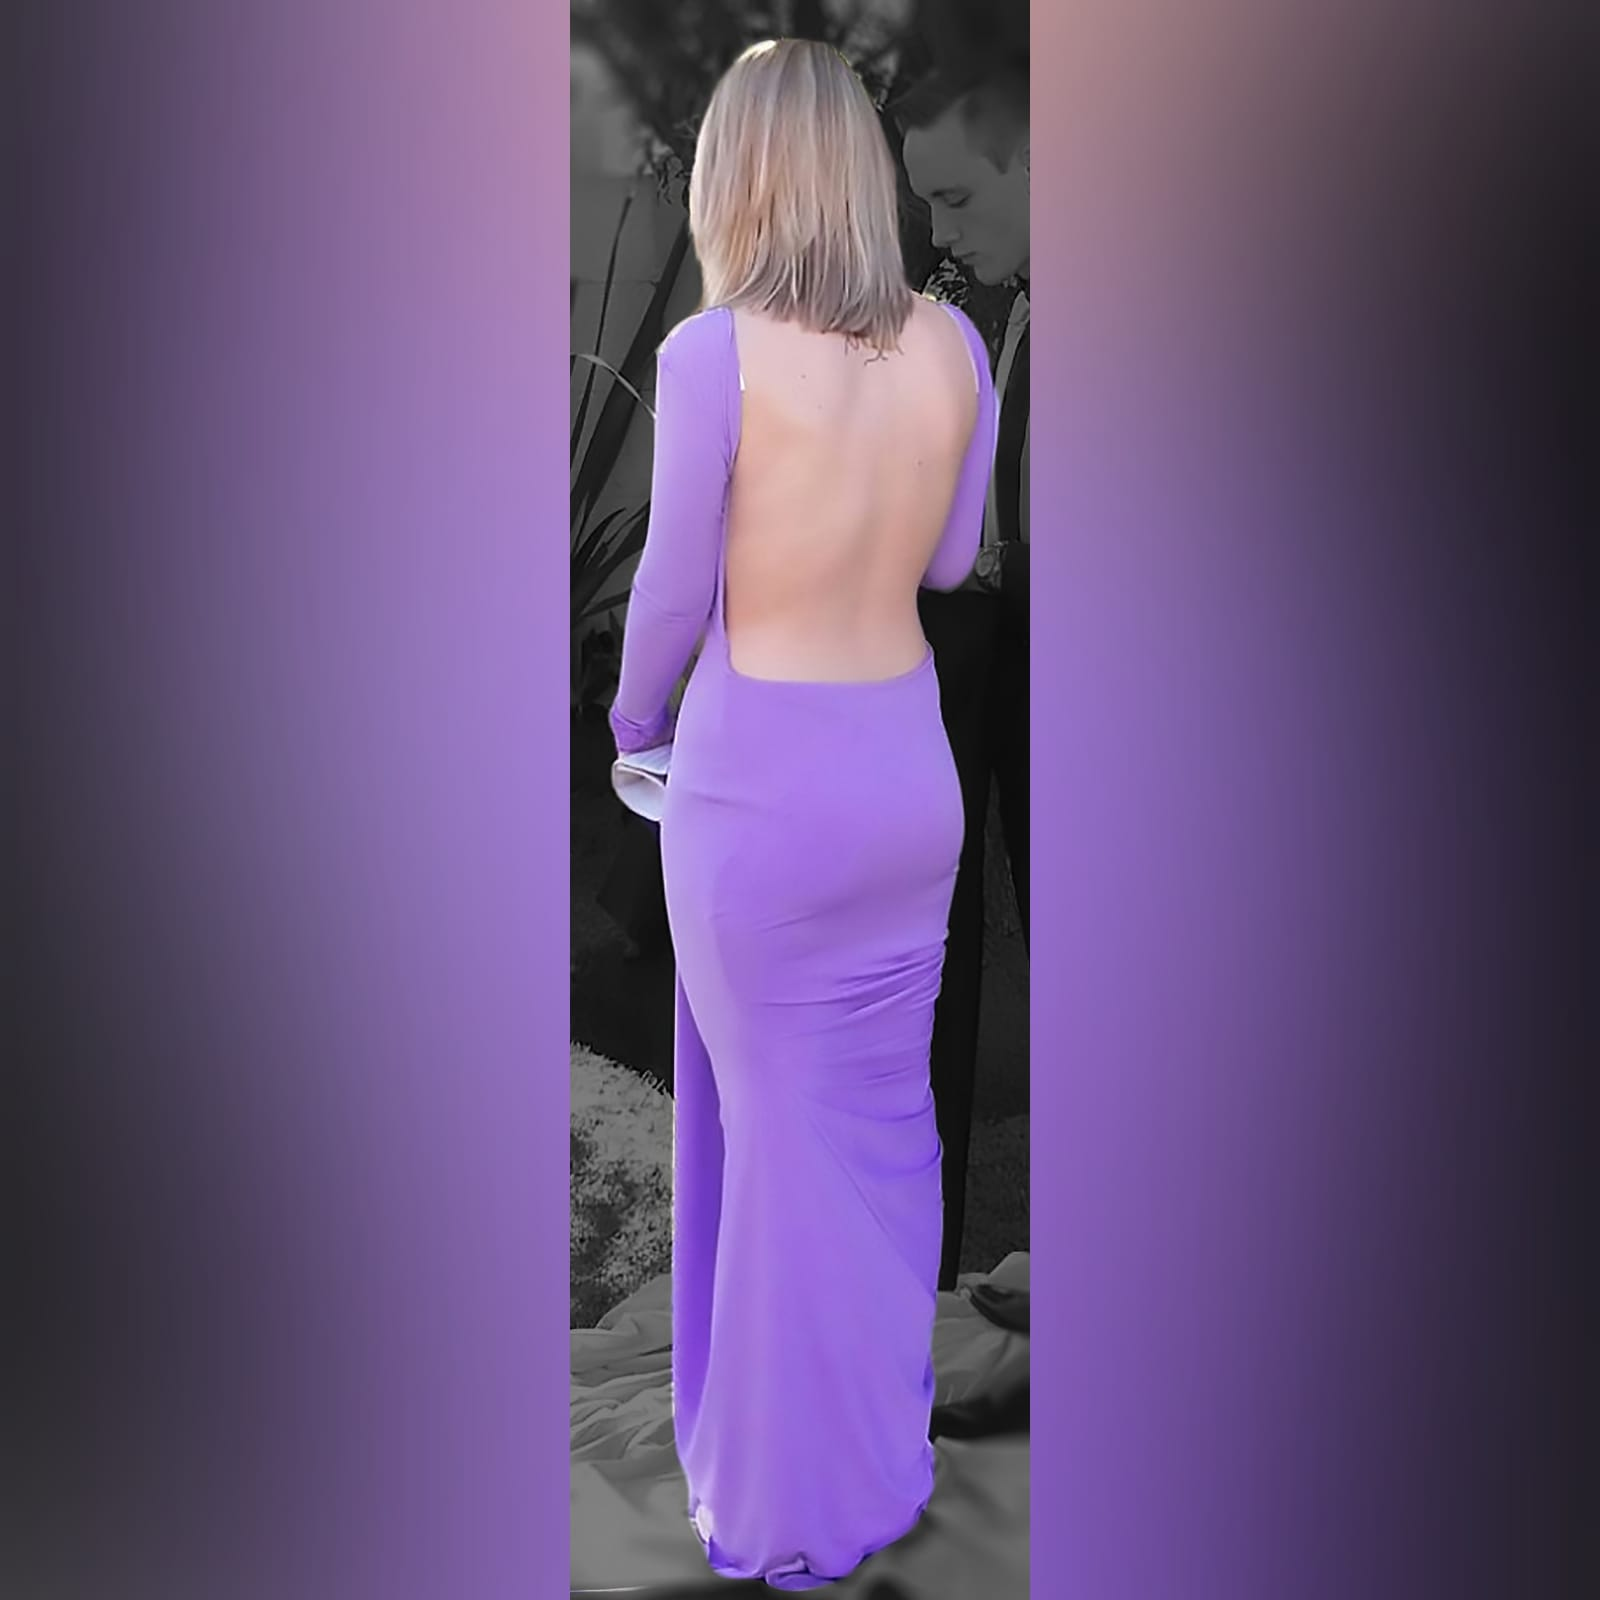 Body fitting lilac soft mermaid prom dress and a jewel neckline 1 body fitting lilac soft memaid prom dress and a jewel neckline. Low open square back. With a train and long sleeves. Sleeves finished with lace.